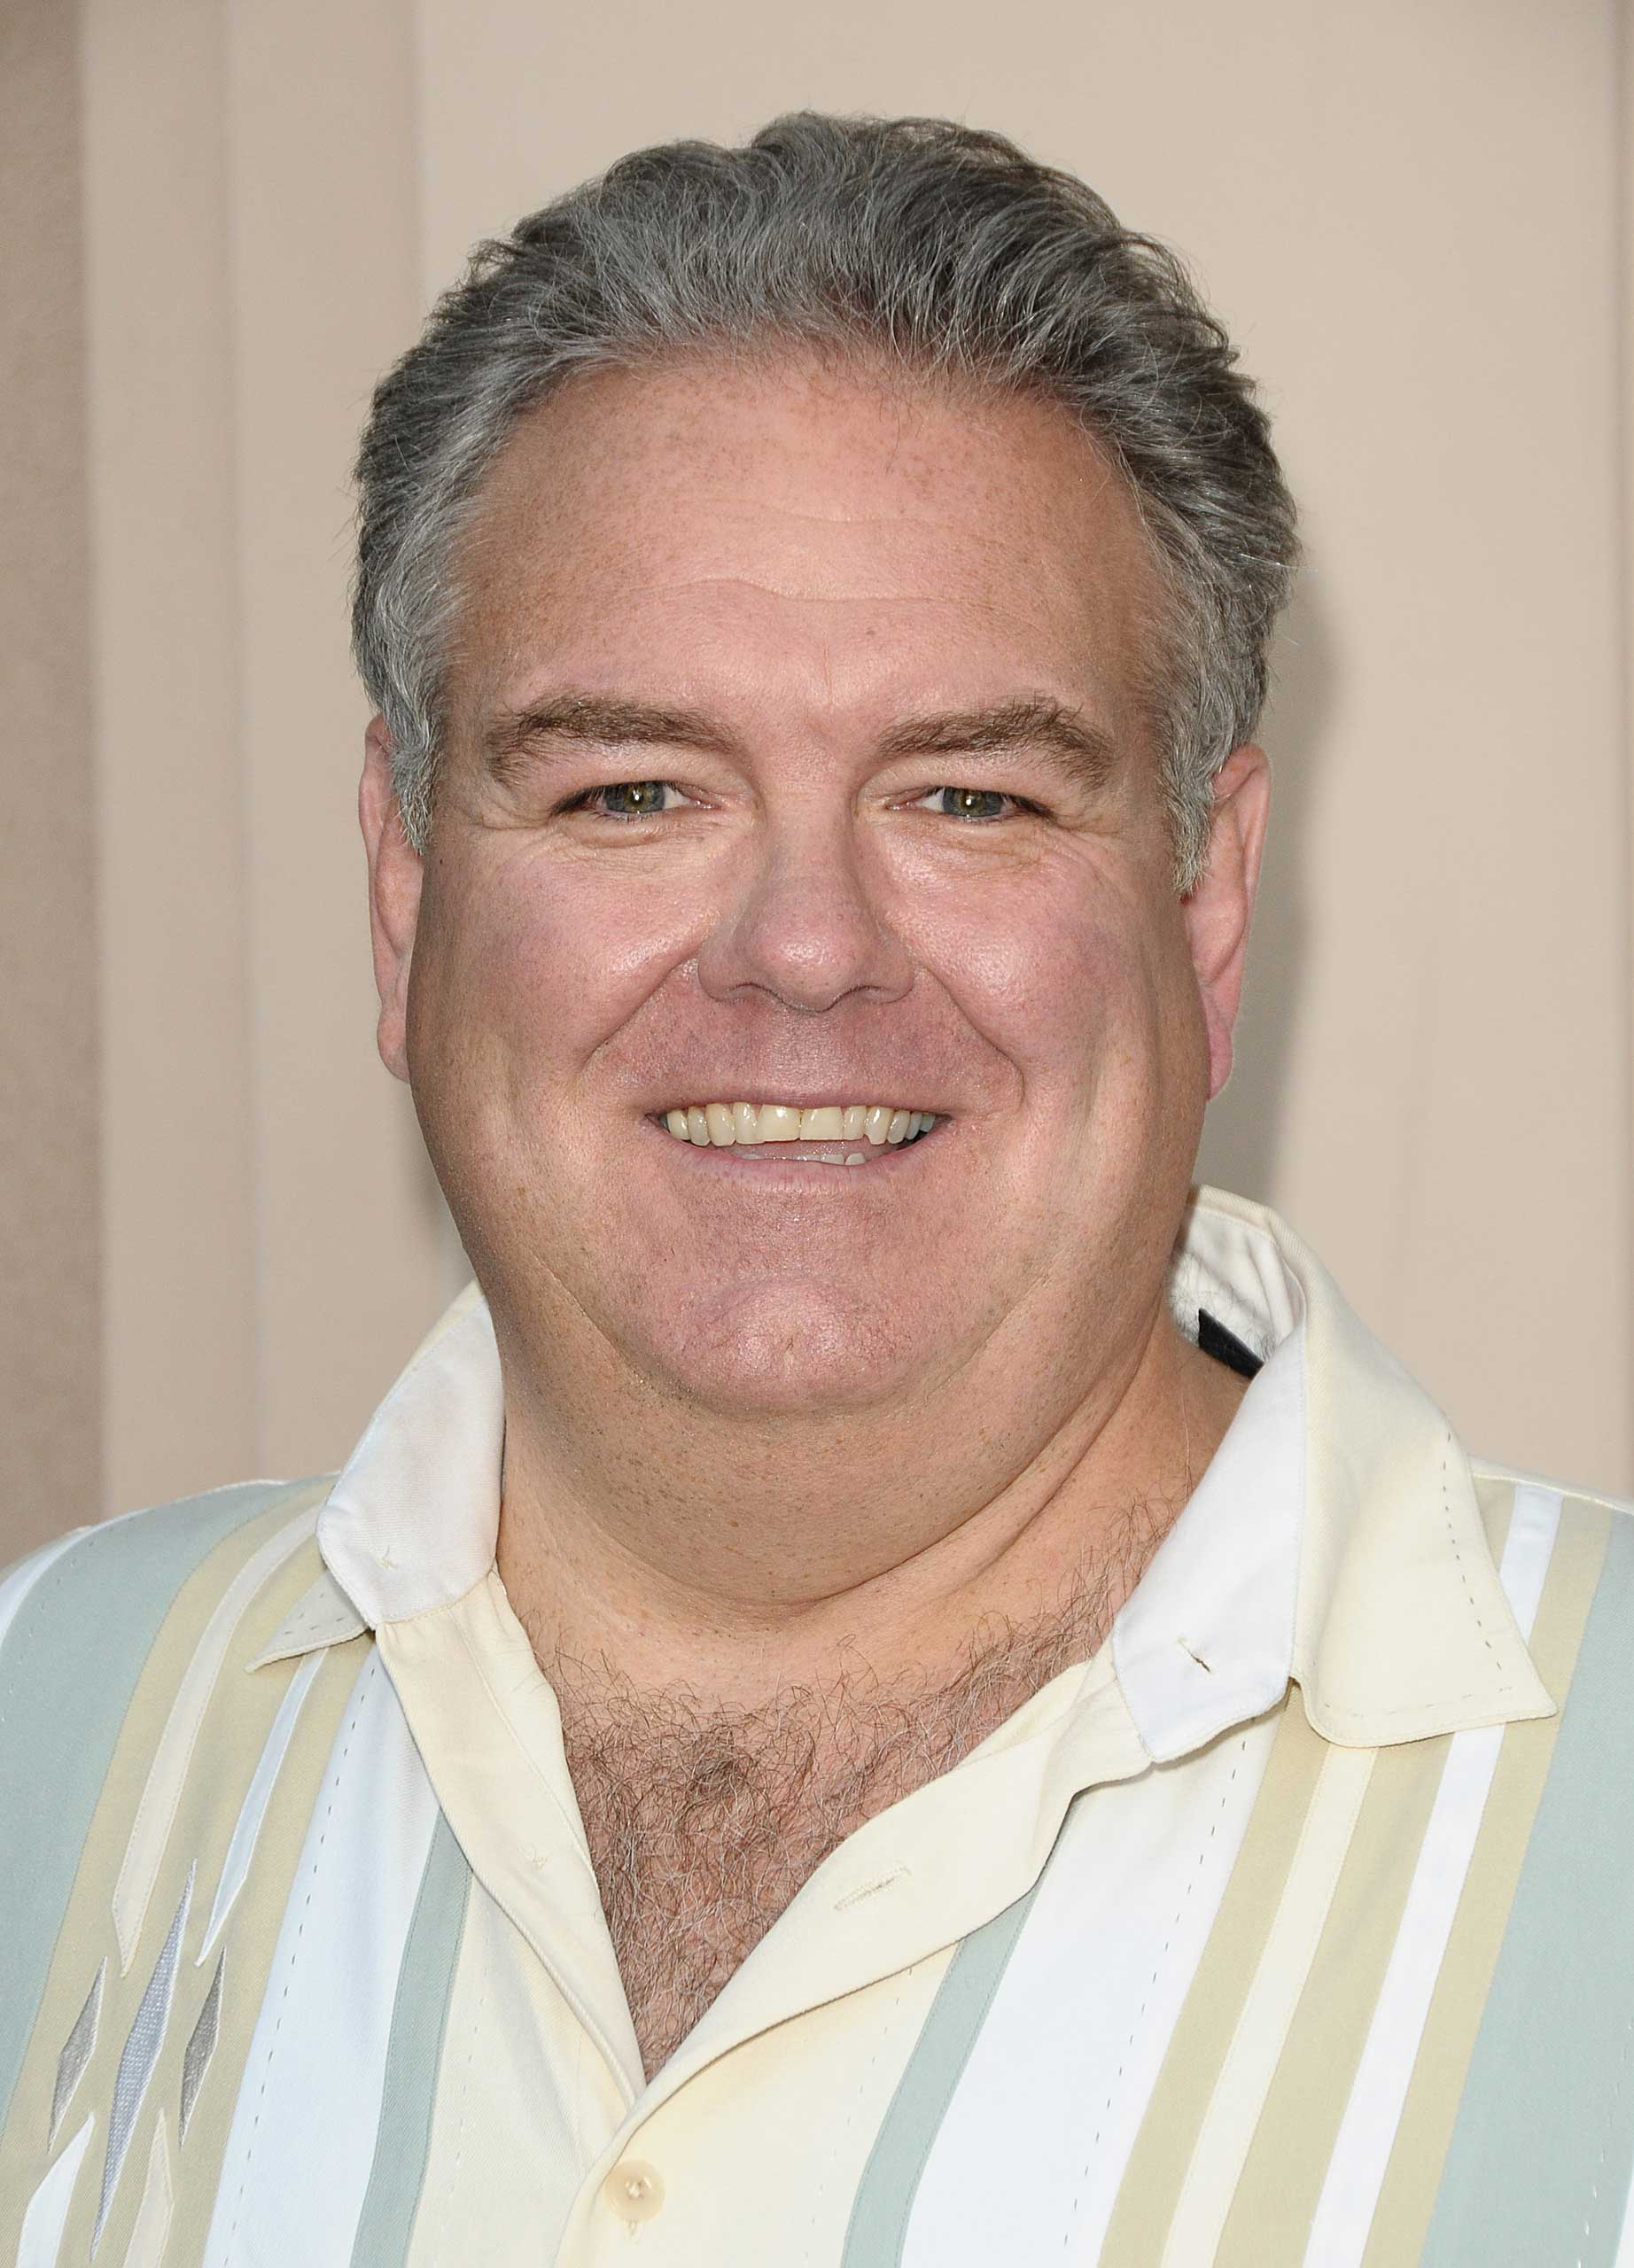 Actor Jim O'Heir attends the  Parks And Recreation  Emmy screening at Leonard H. Goldenson Theatre on May 19, 2010 in Hollywood.